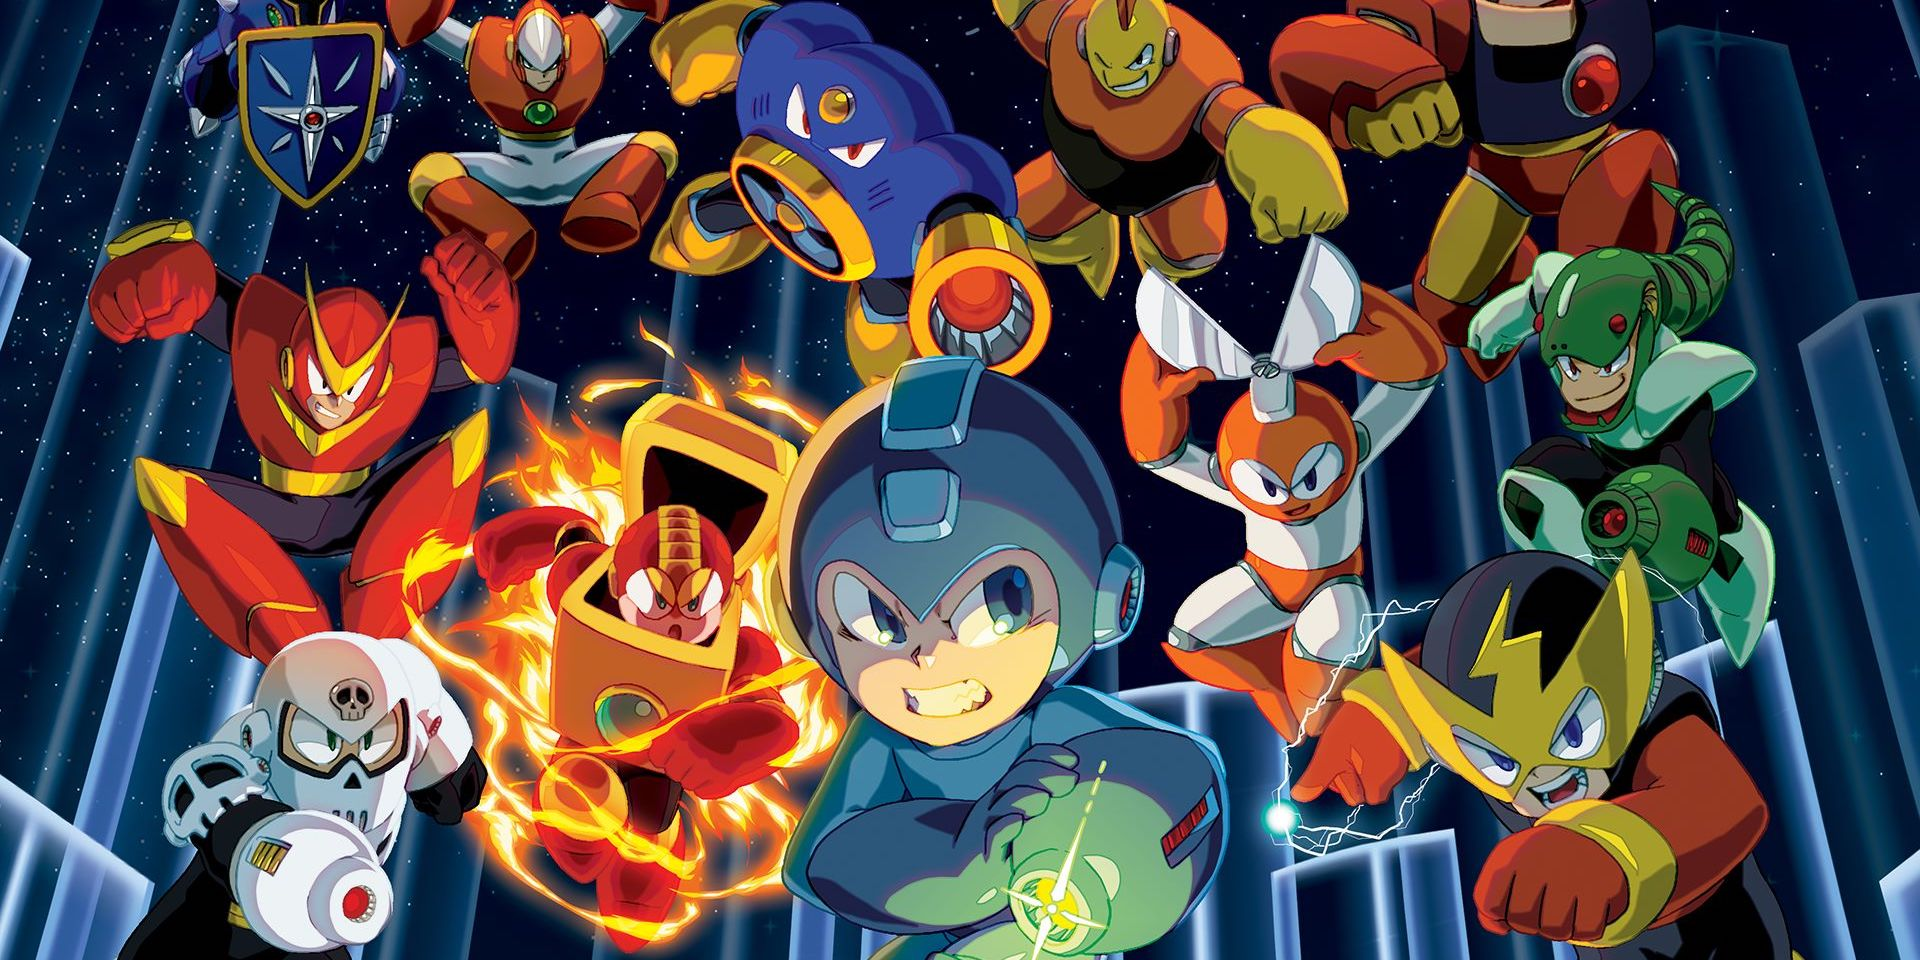 Today's Best Game Deals: Mega Man Collection 1 & 2 from $15, Shadow of the Colossus $15, more